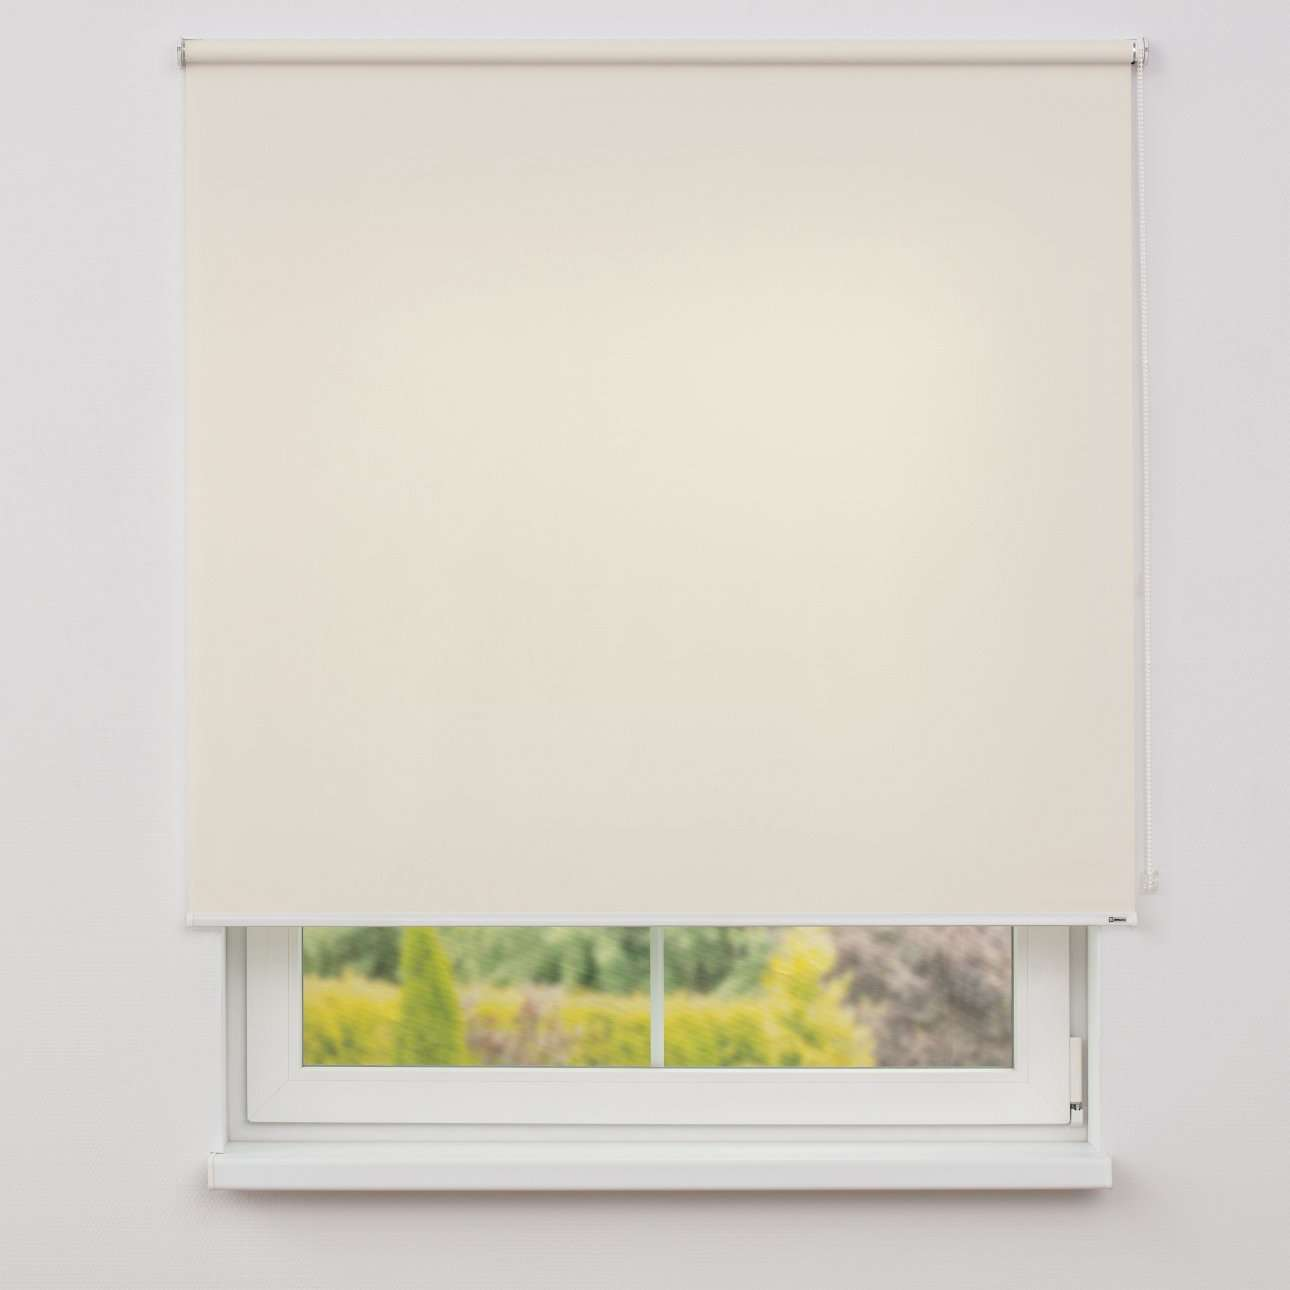 Roller blind  in collection Roller blind transparent, fabric: 4905